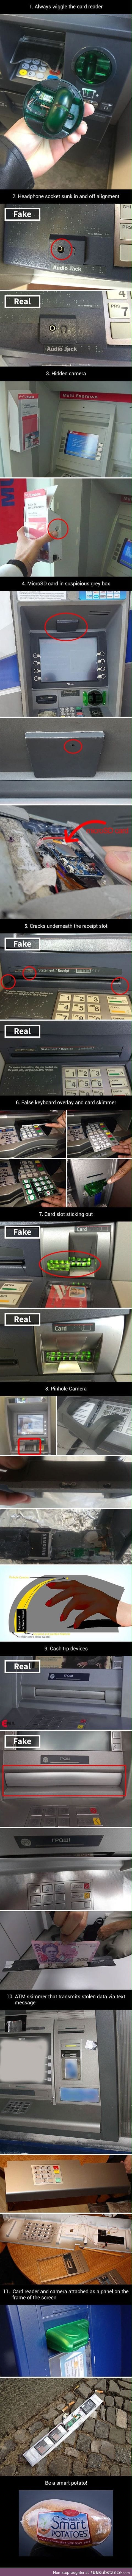 This will help you notice fake ATM machines